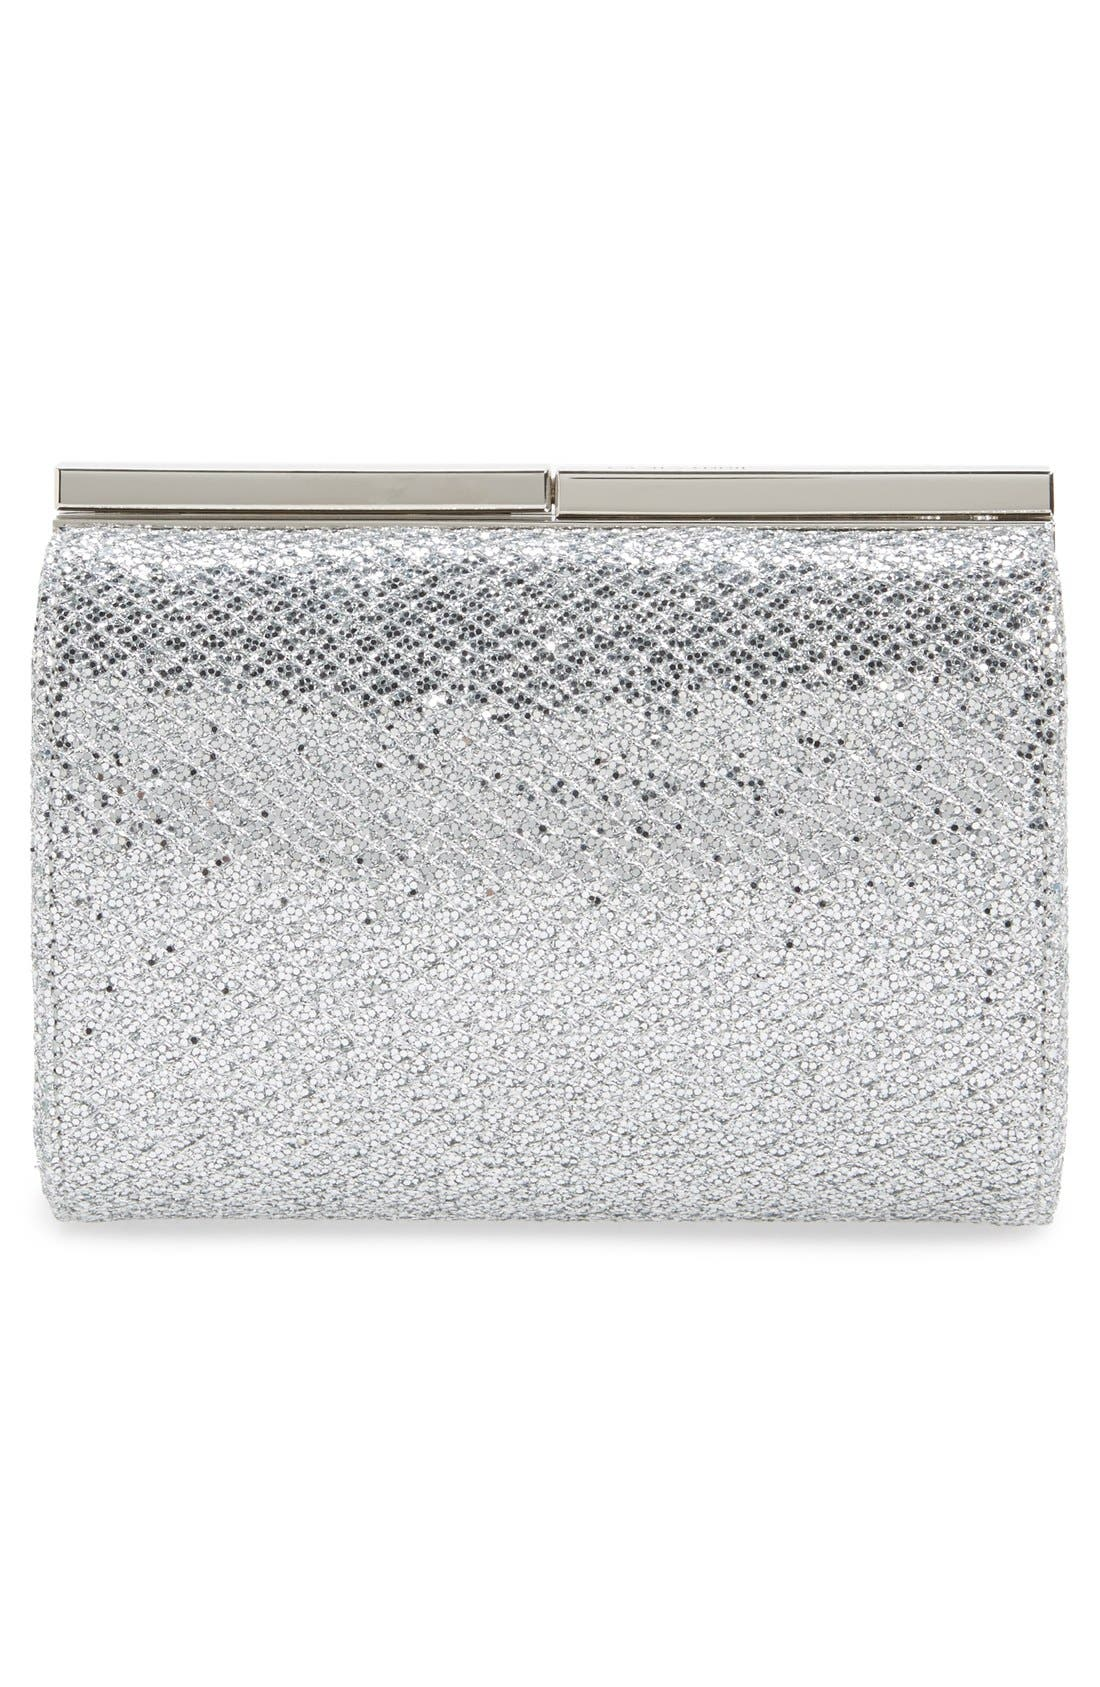 Alternate Image 3  - Jimmy Choo 'Cate' Glitter Box Clutch